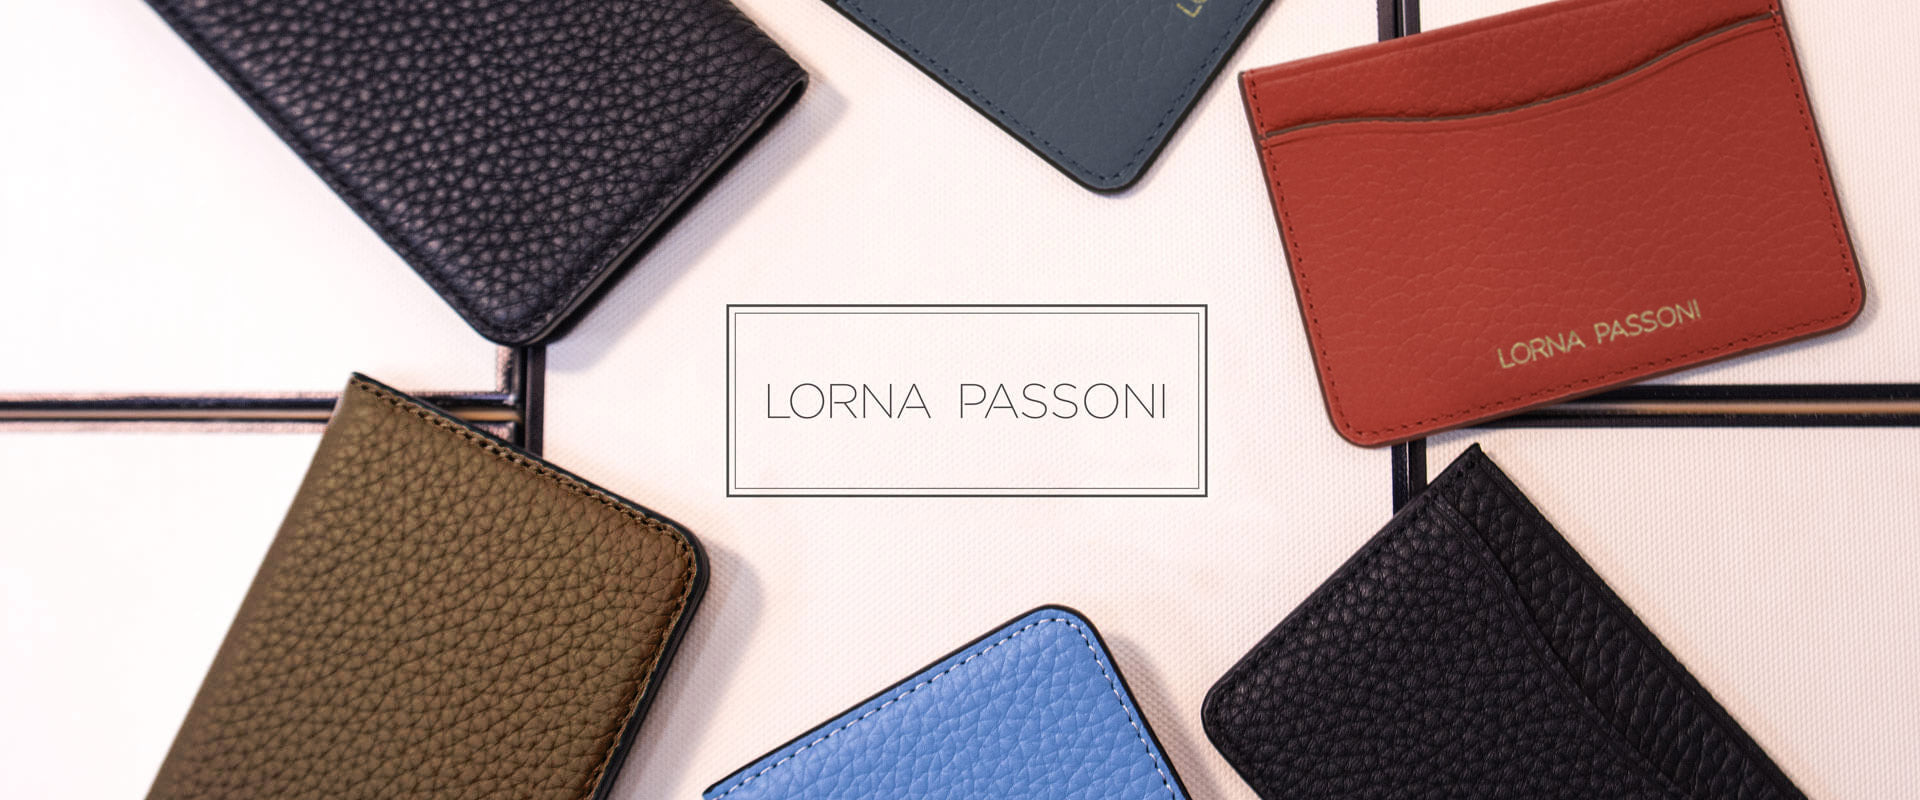 Accessory - LORNA PASSONI - Leather Folio Case for iPhone 8/7 Plus